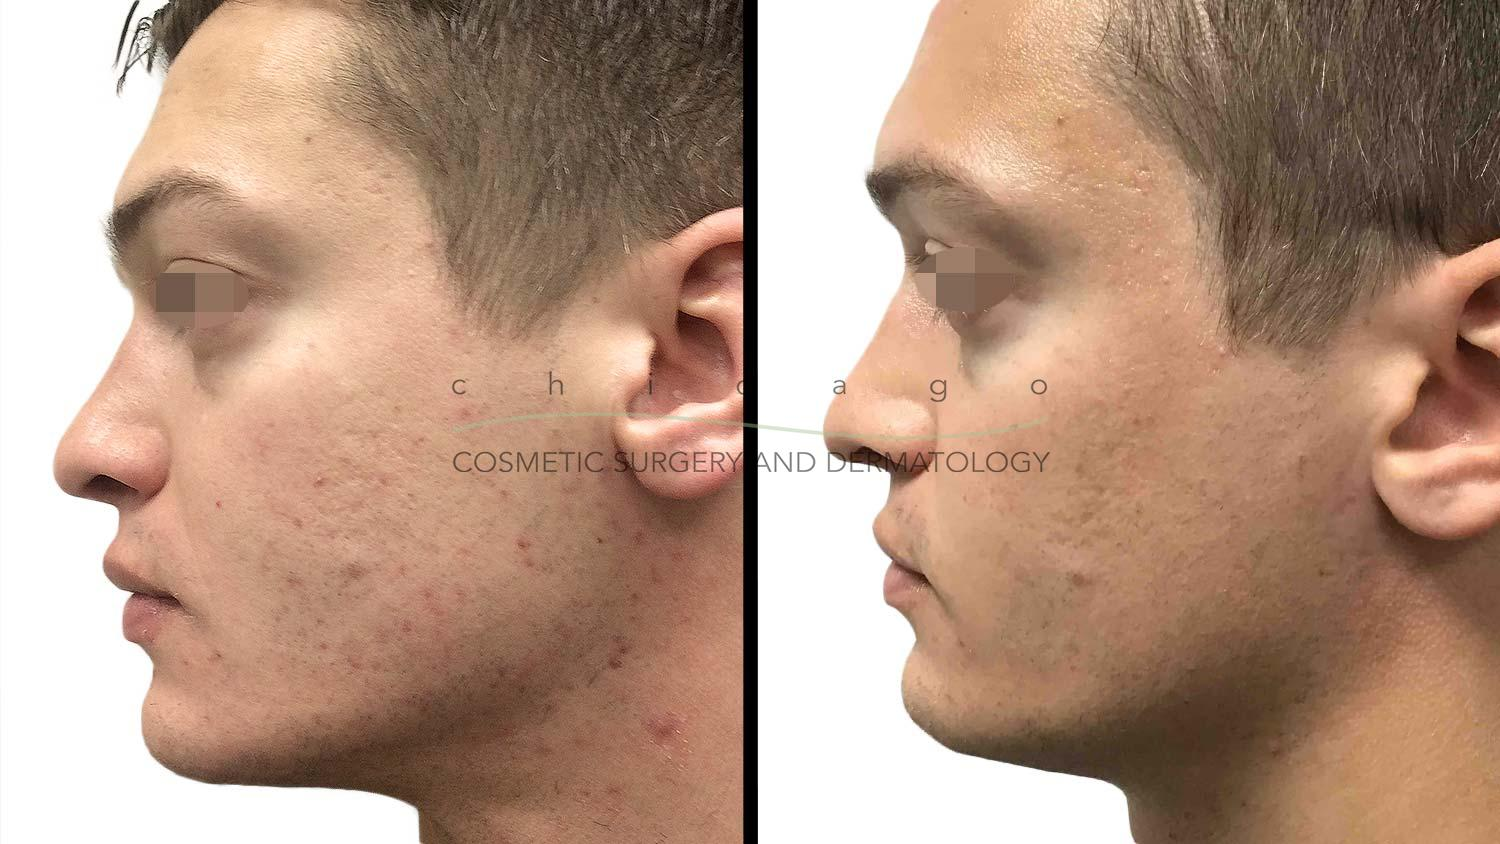 Acne by Dr. Omer Ibrahim